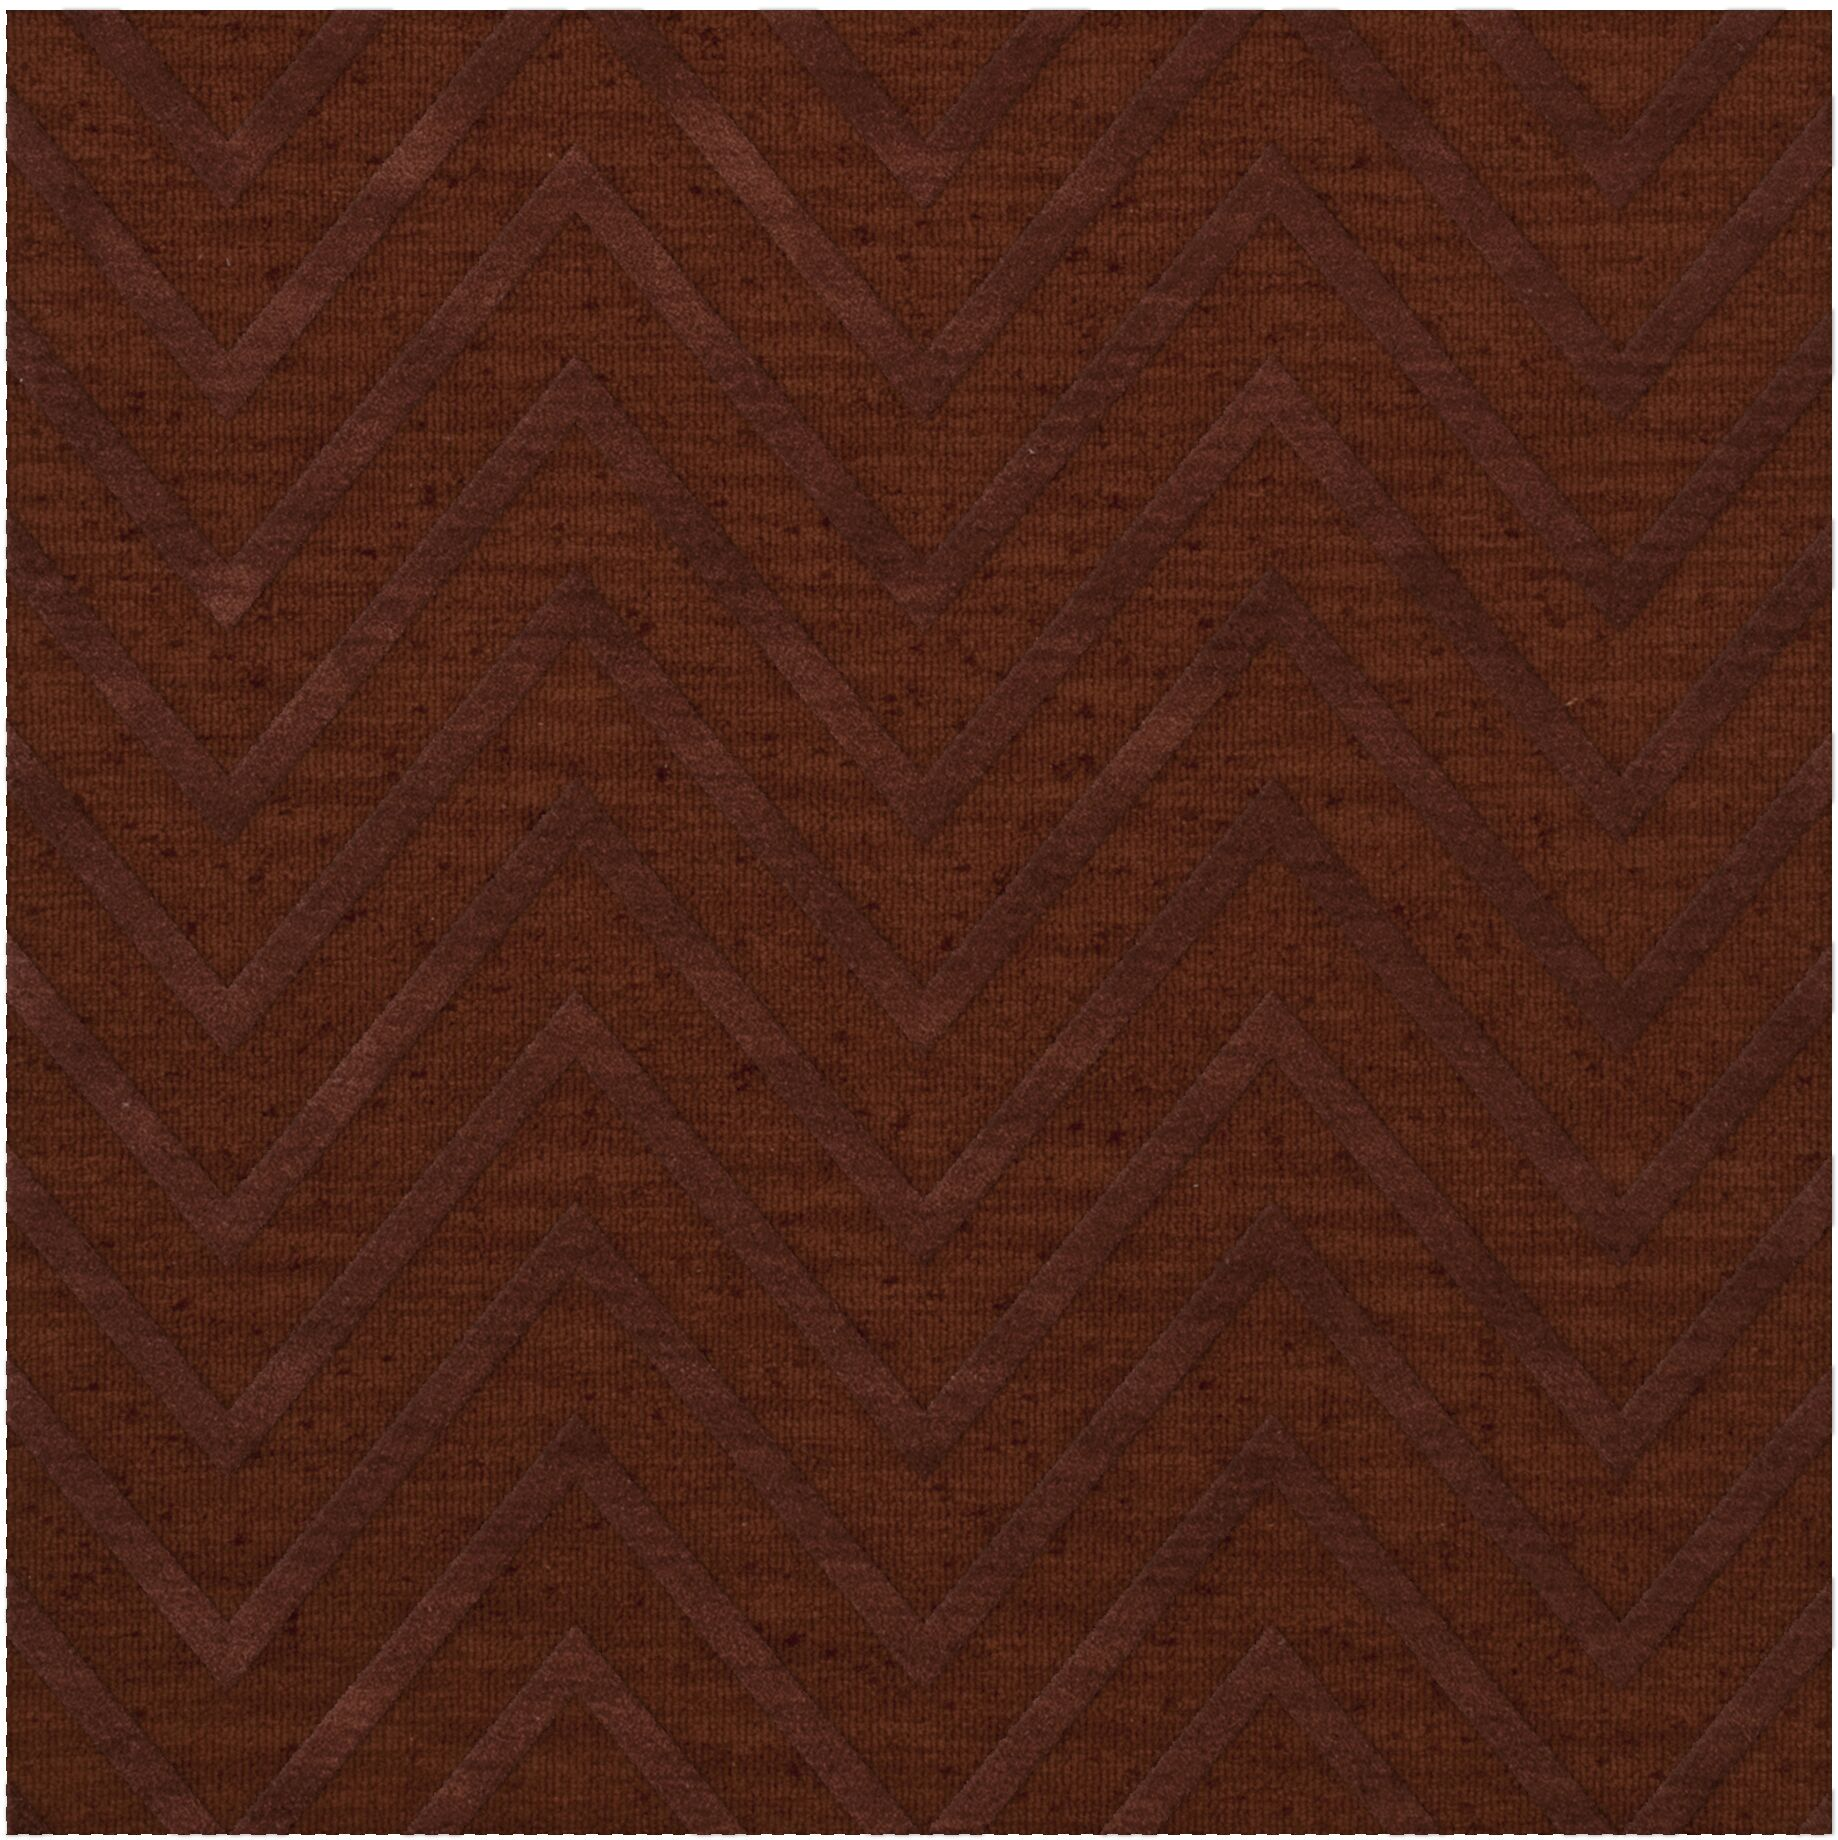 Dover Tufted Wool Paprika Area Rug Rug Size: Square 6'